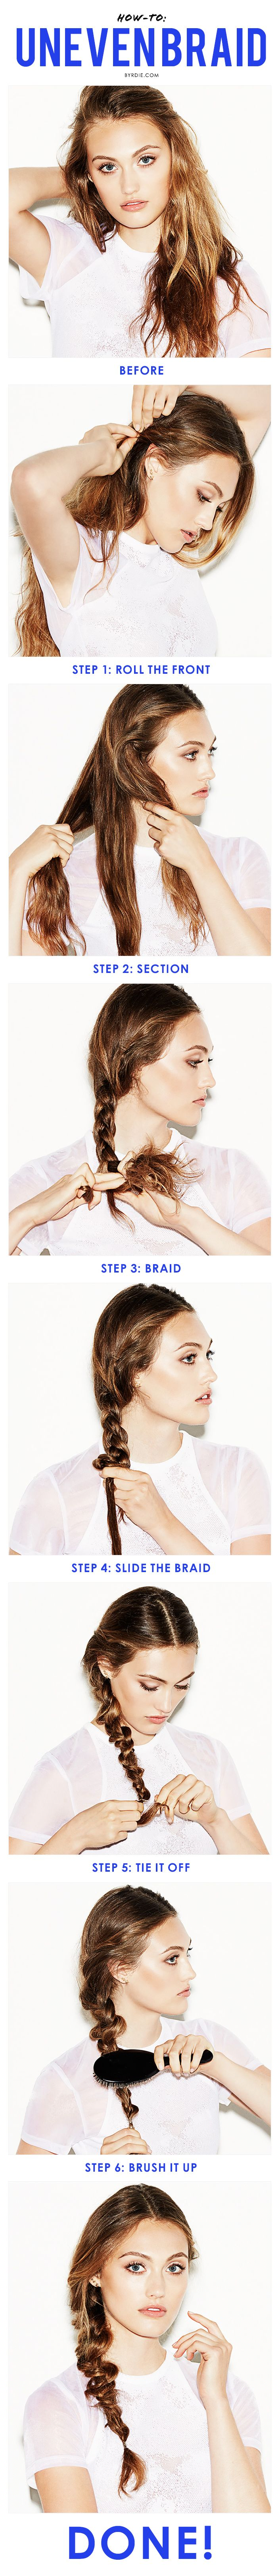 How to create a textured uneven braid {and look totally chic}: